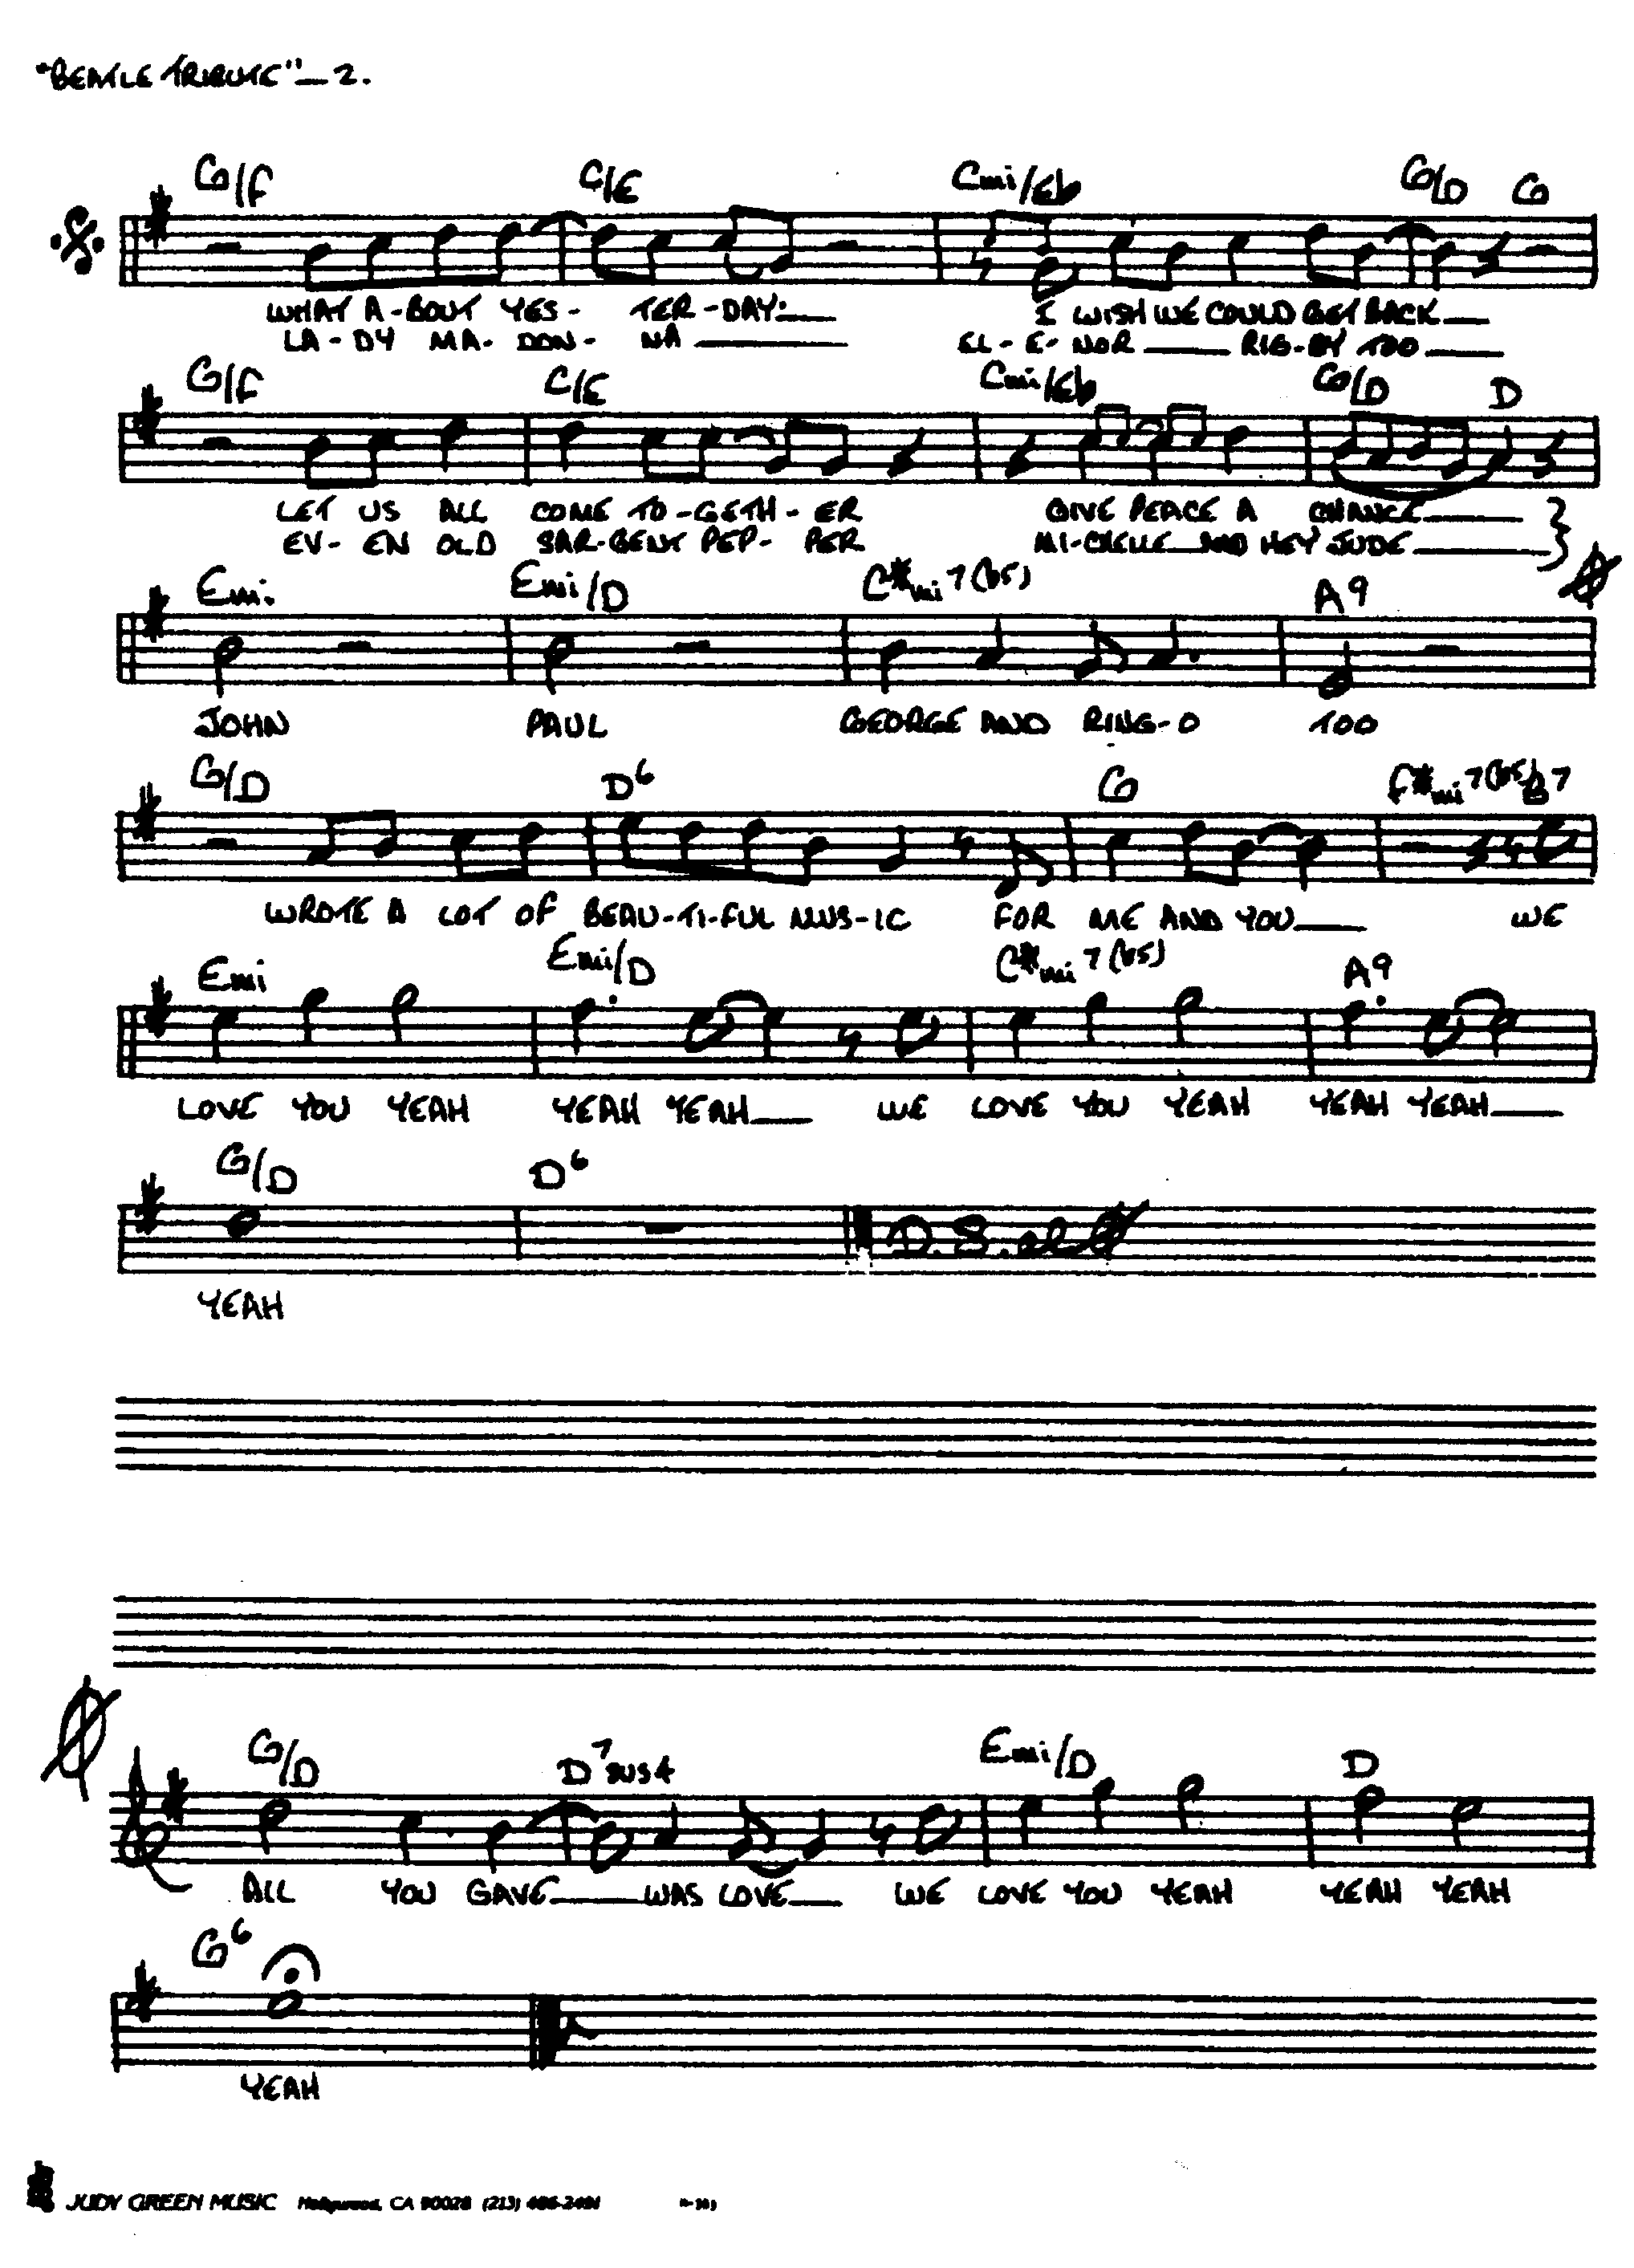 Beatle_Tribute_sheetmusic_p2